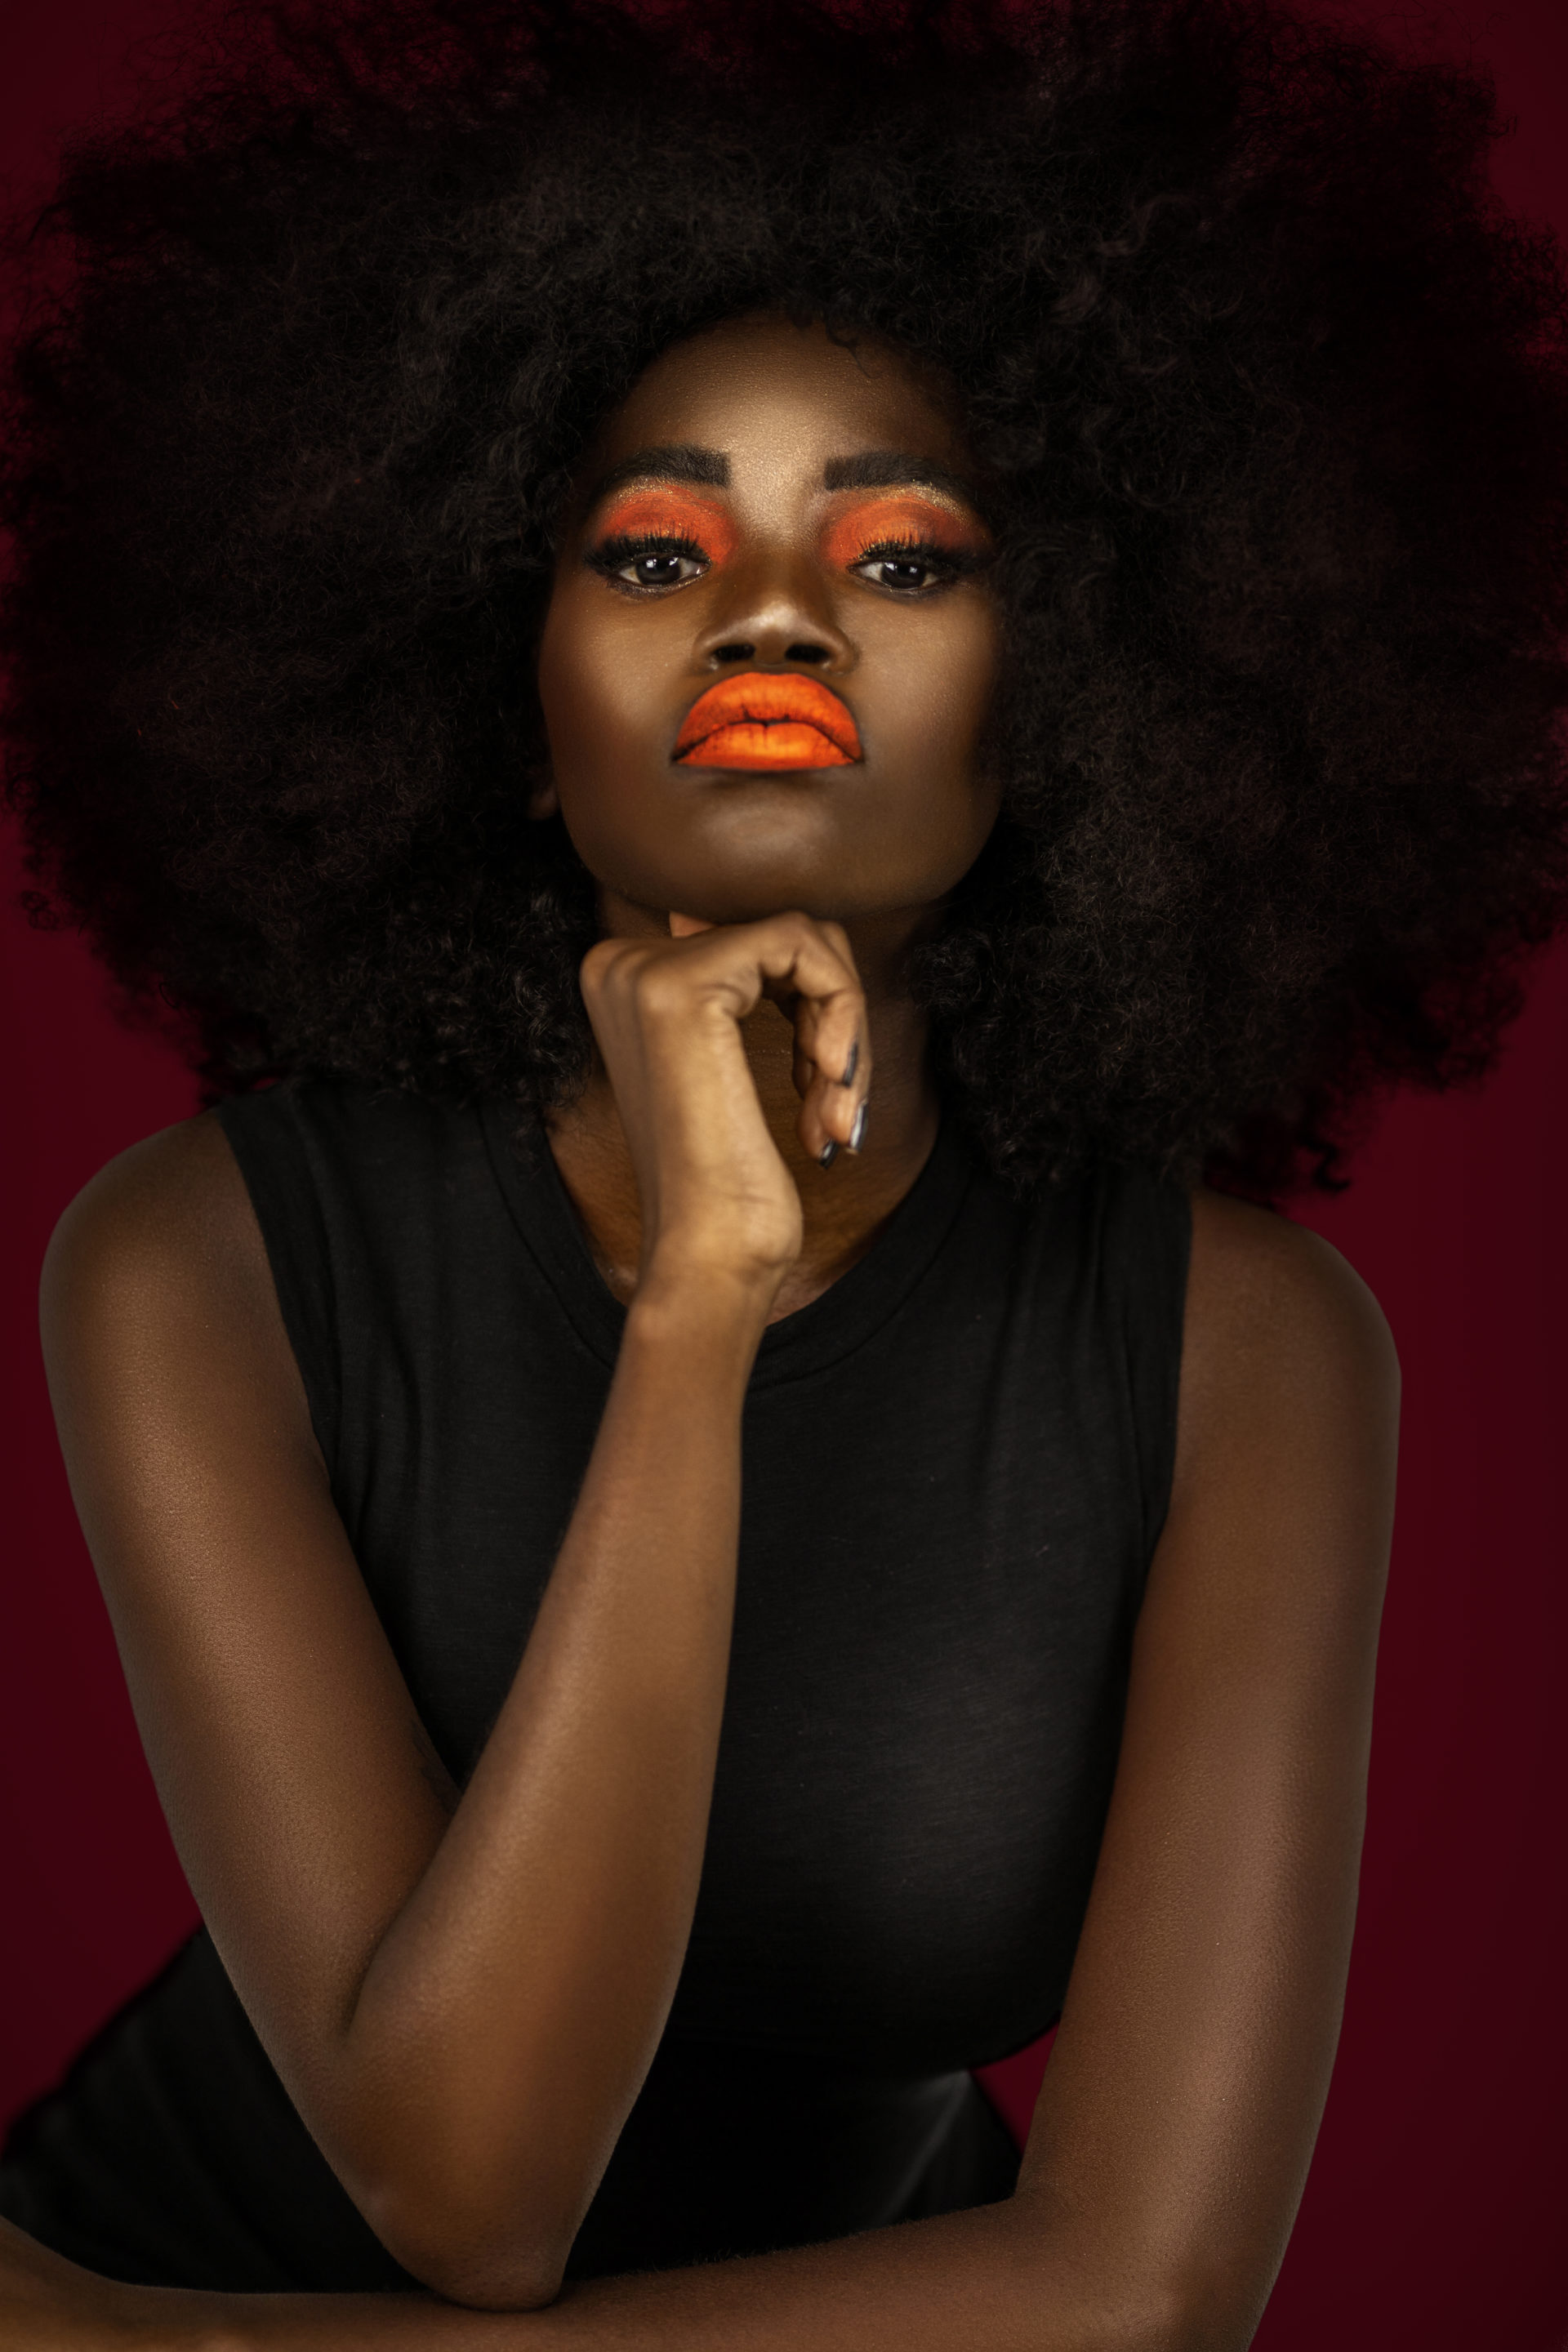 Clean & Serene Black Lady With Big Afro & Orange Lips